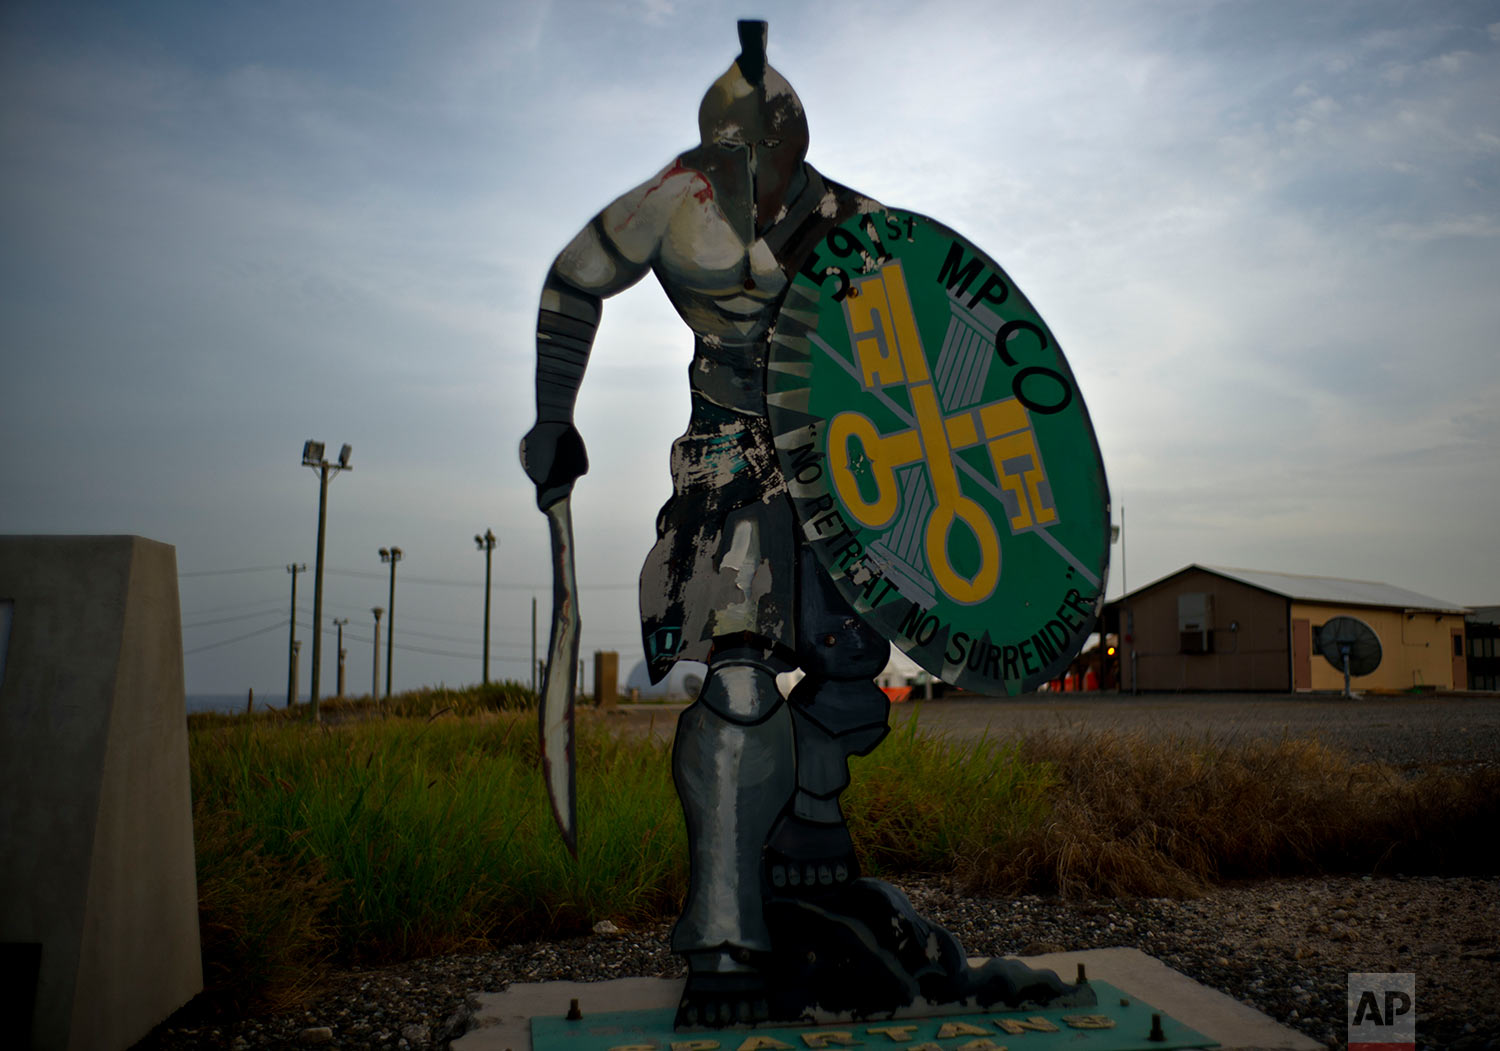 A statue of Iron Spartans stands on the naval base at Guantanamo Bay, June 6, 2018. The icon represents the 591st U.S. Military Police Company, which was deployed at one time to the base.